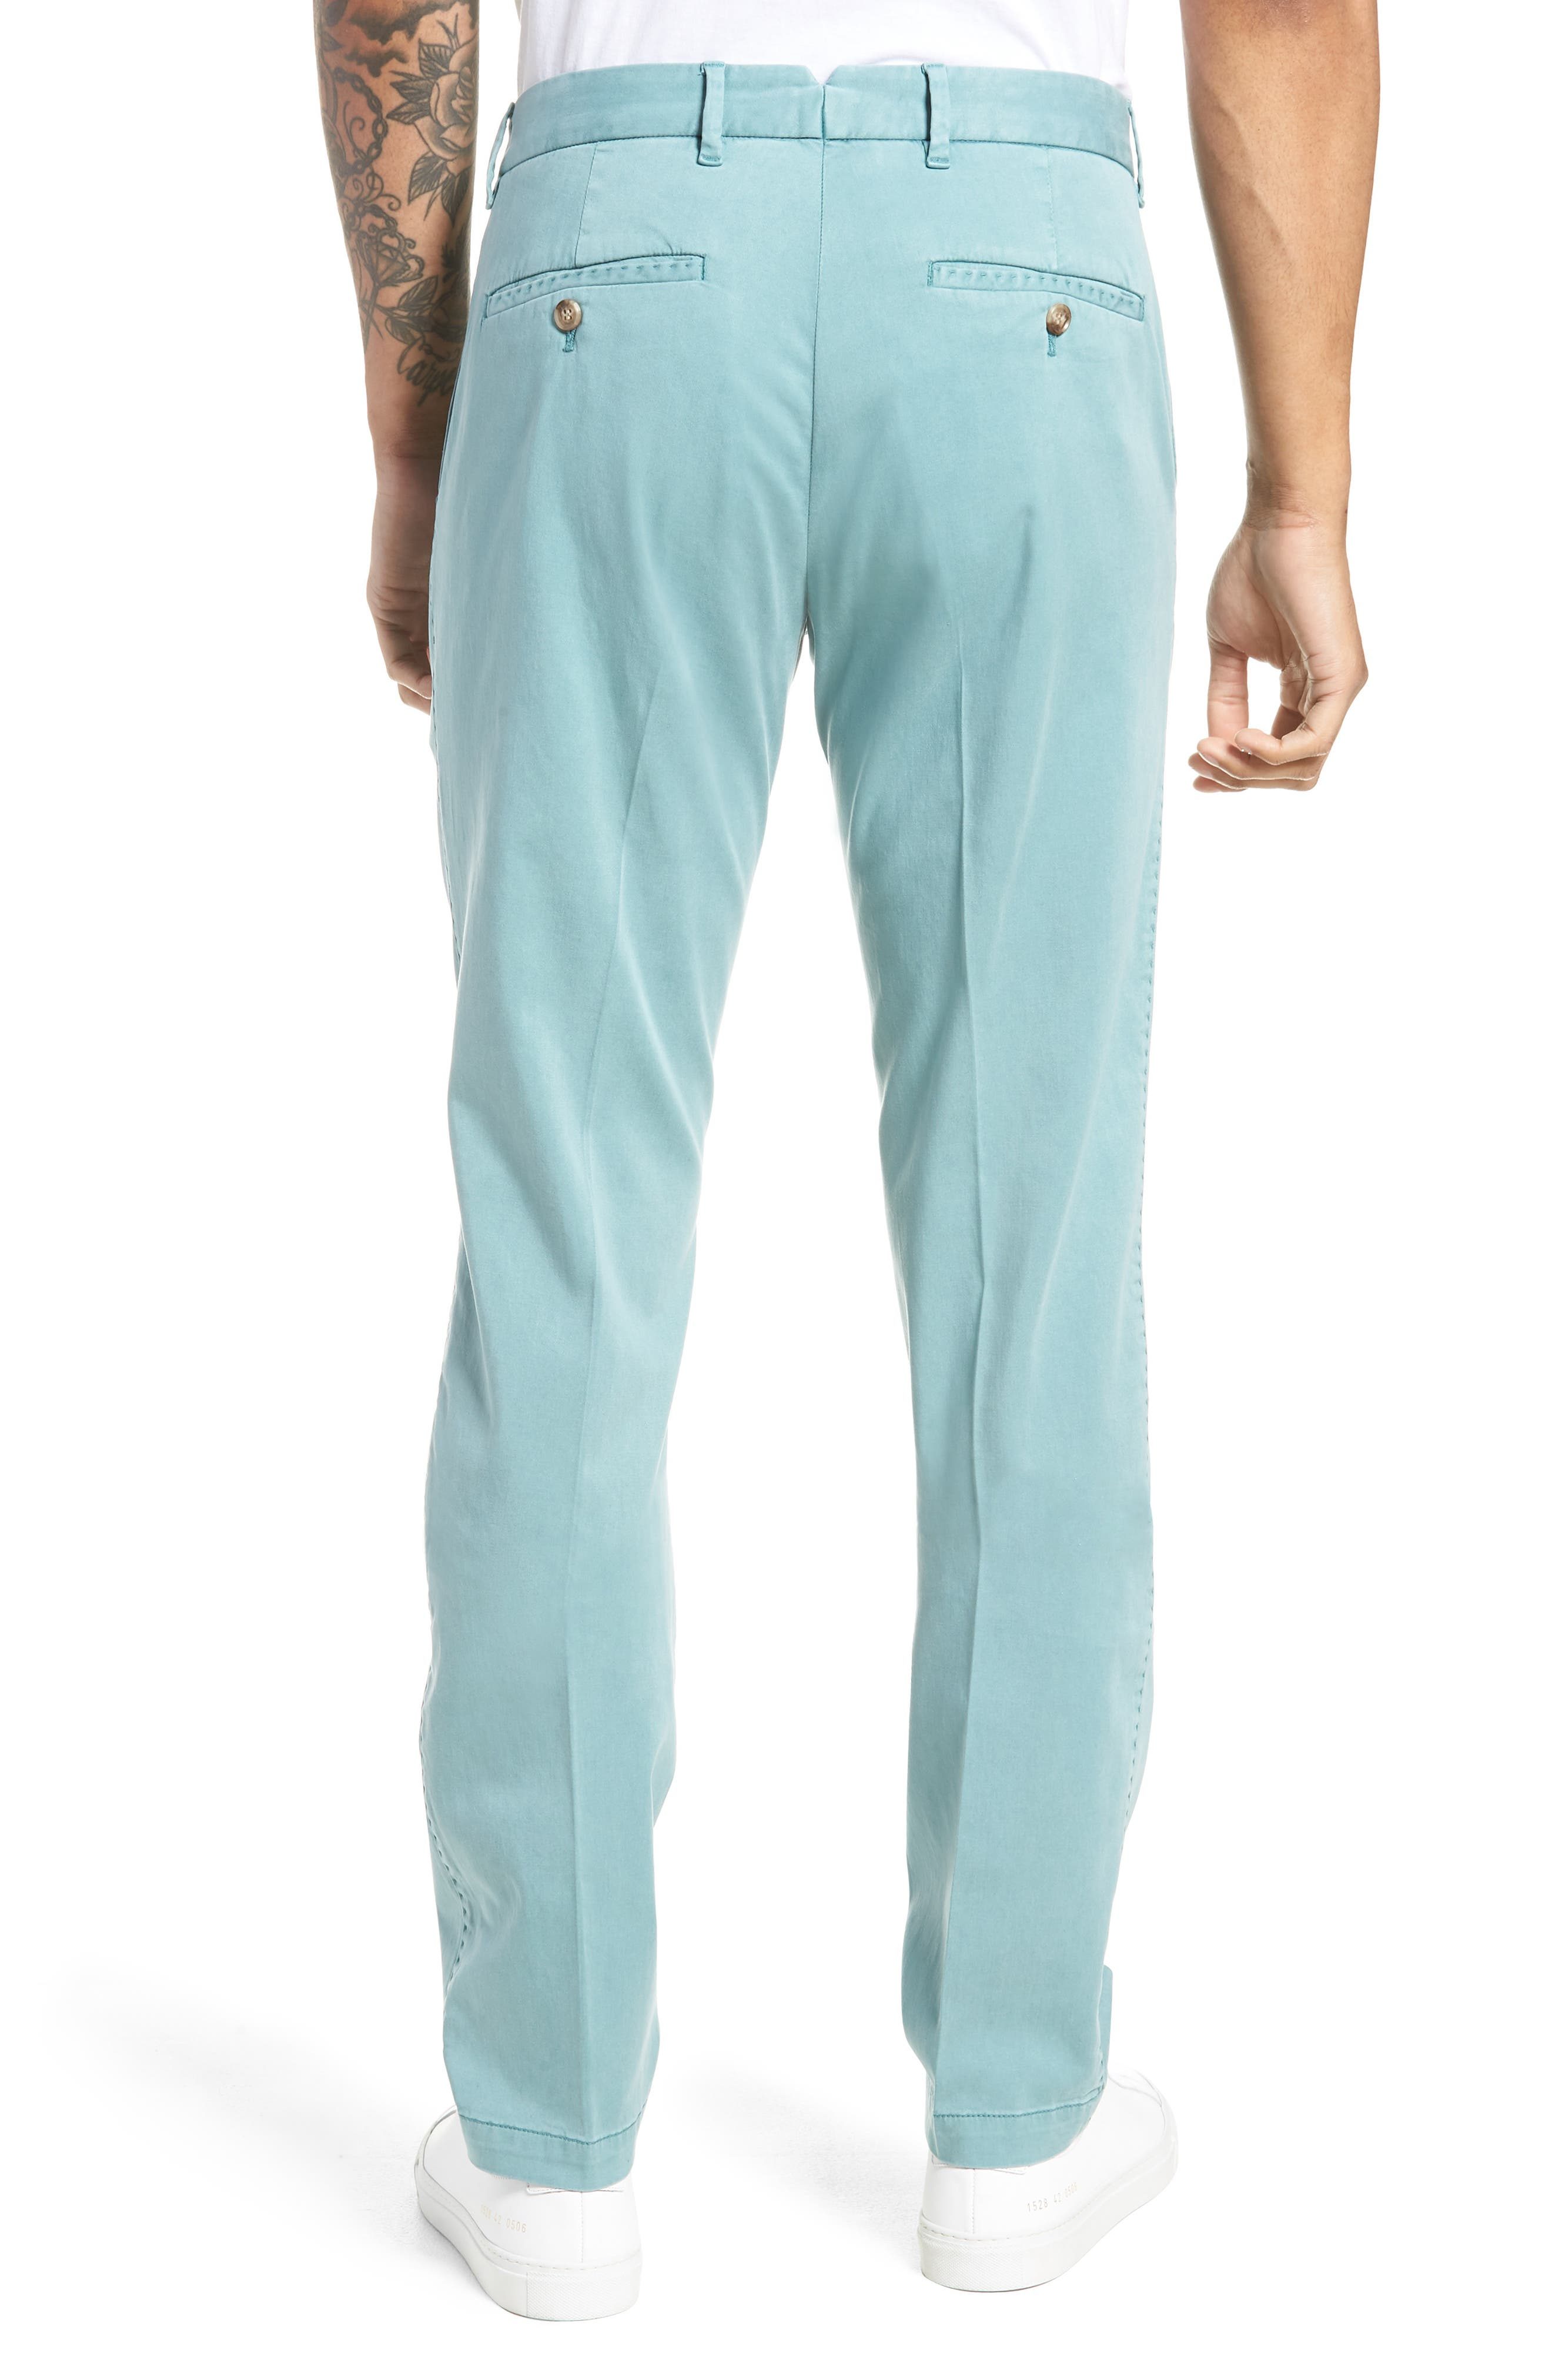 ZACHARY PRELL, Aster Straight Fit Pants, Alternate thumbnail 2, color, TEAL